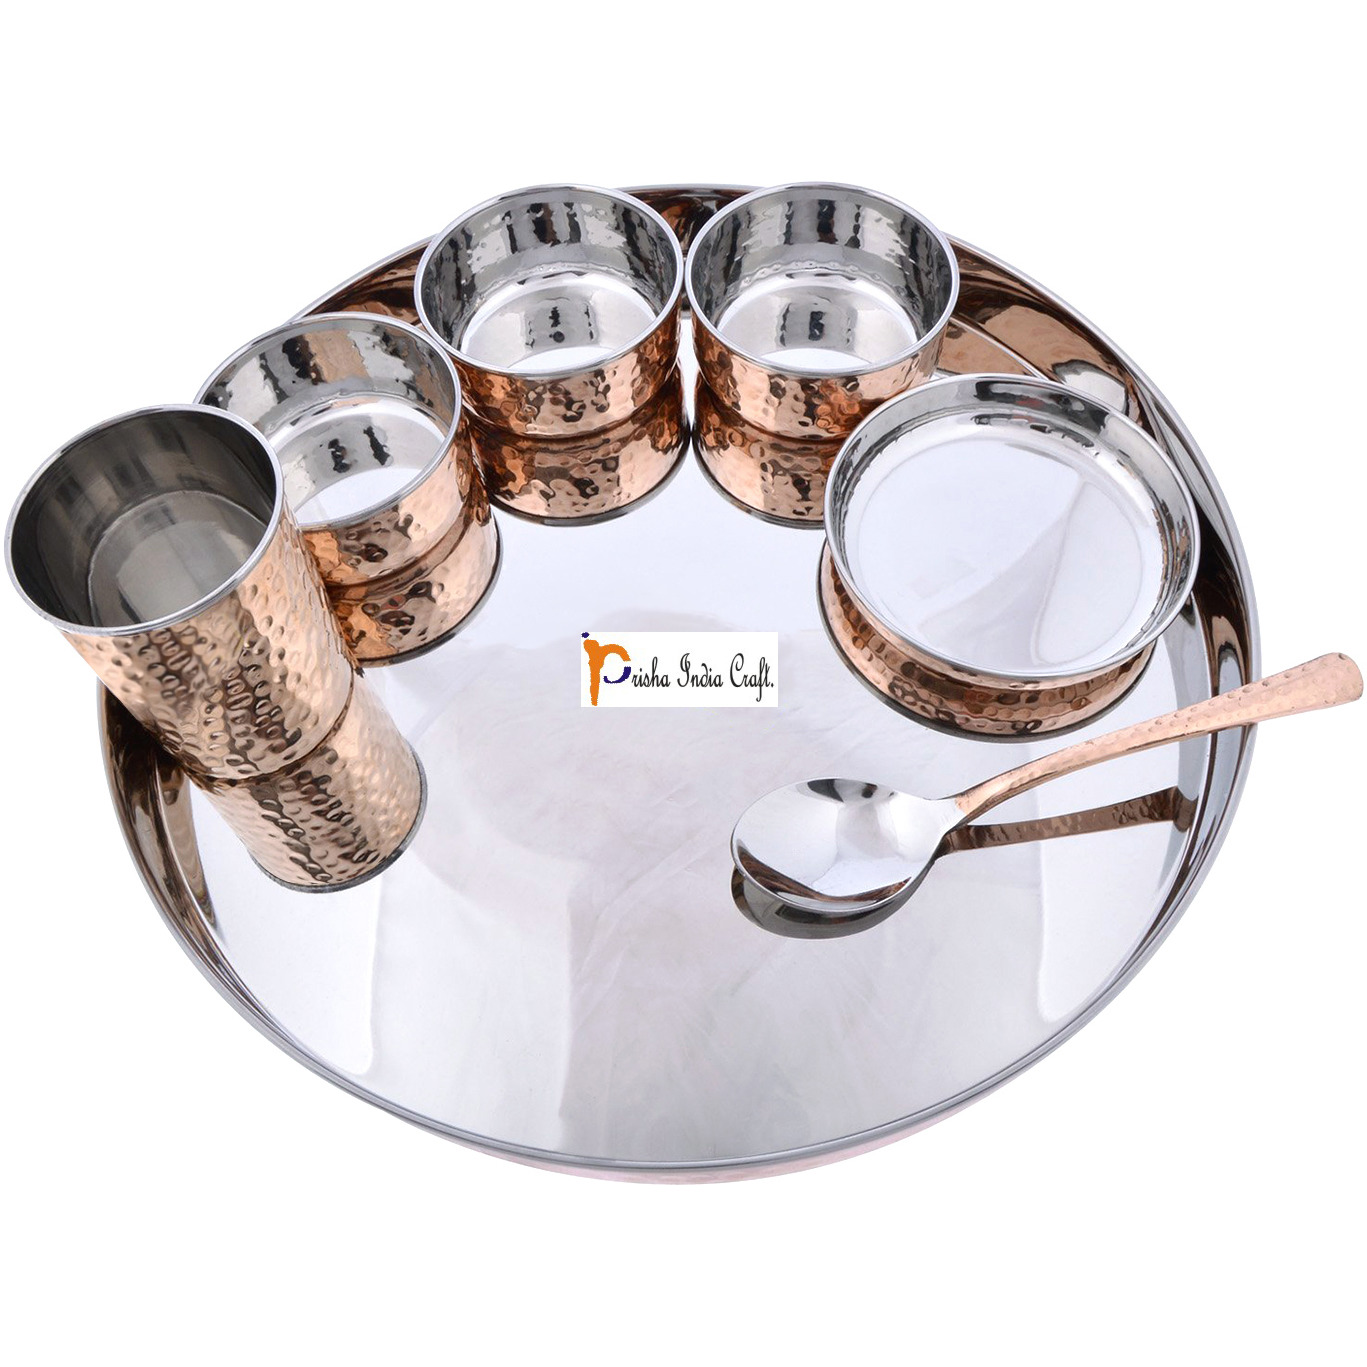 Prisha India Craft B. Set of 5 Dinnerware Traditional Stainless Steel Copper Dinner Set of Thali Plate, Bowls, Glass and Spoon, Dia 13  With 1 Stainless Steel Copper Hammered Pitcher Jug - Christmas Gift